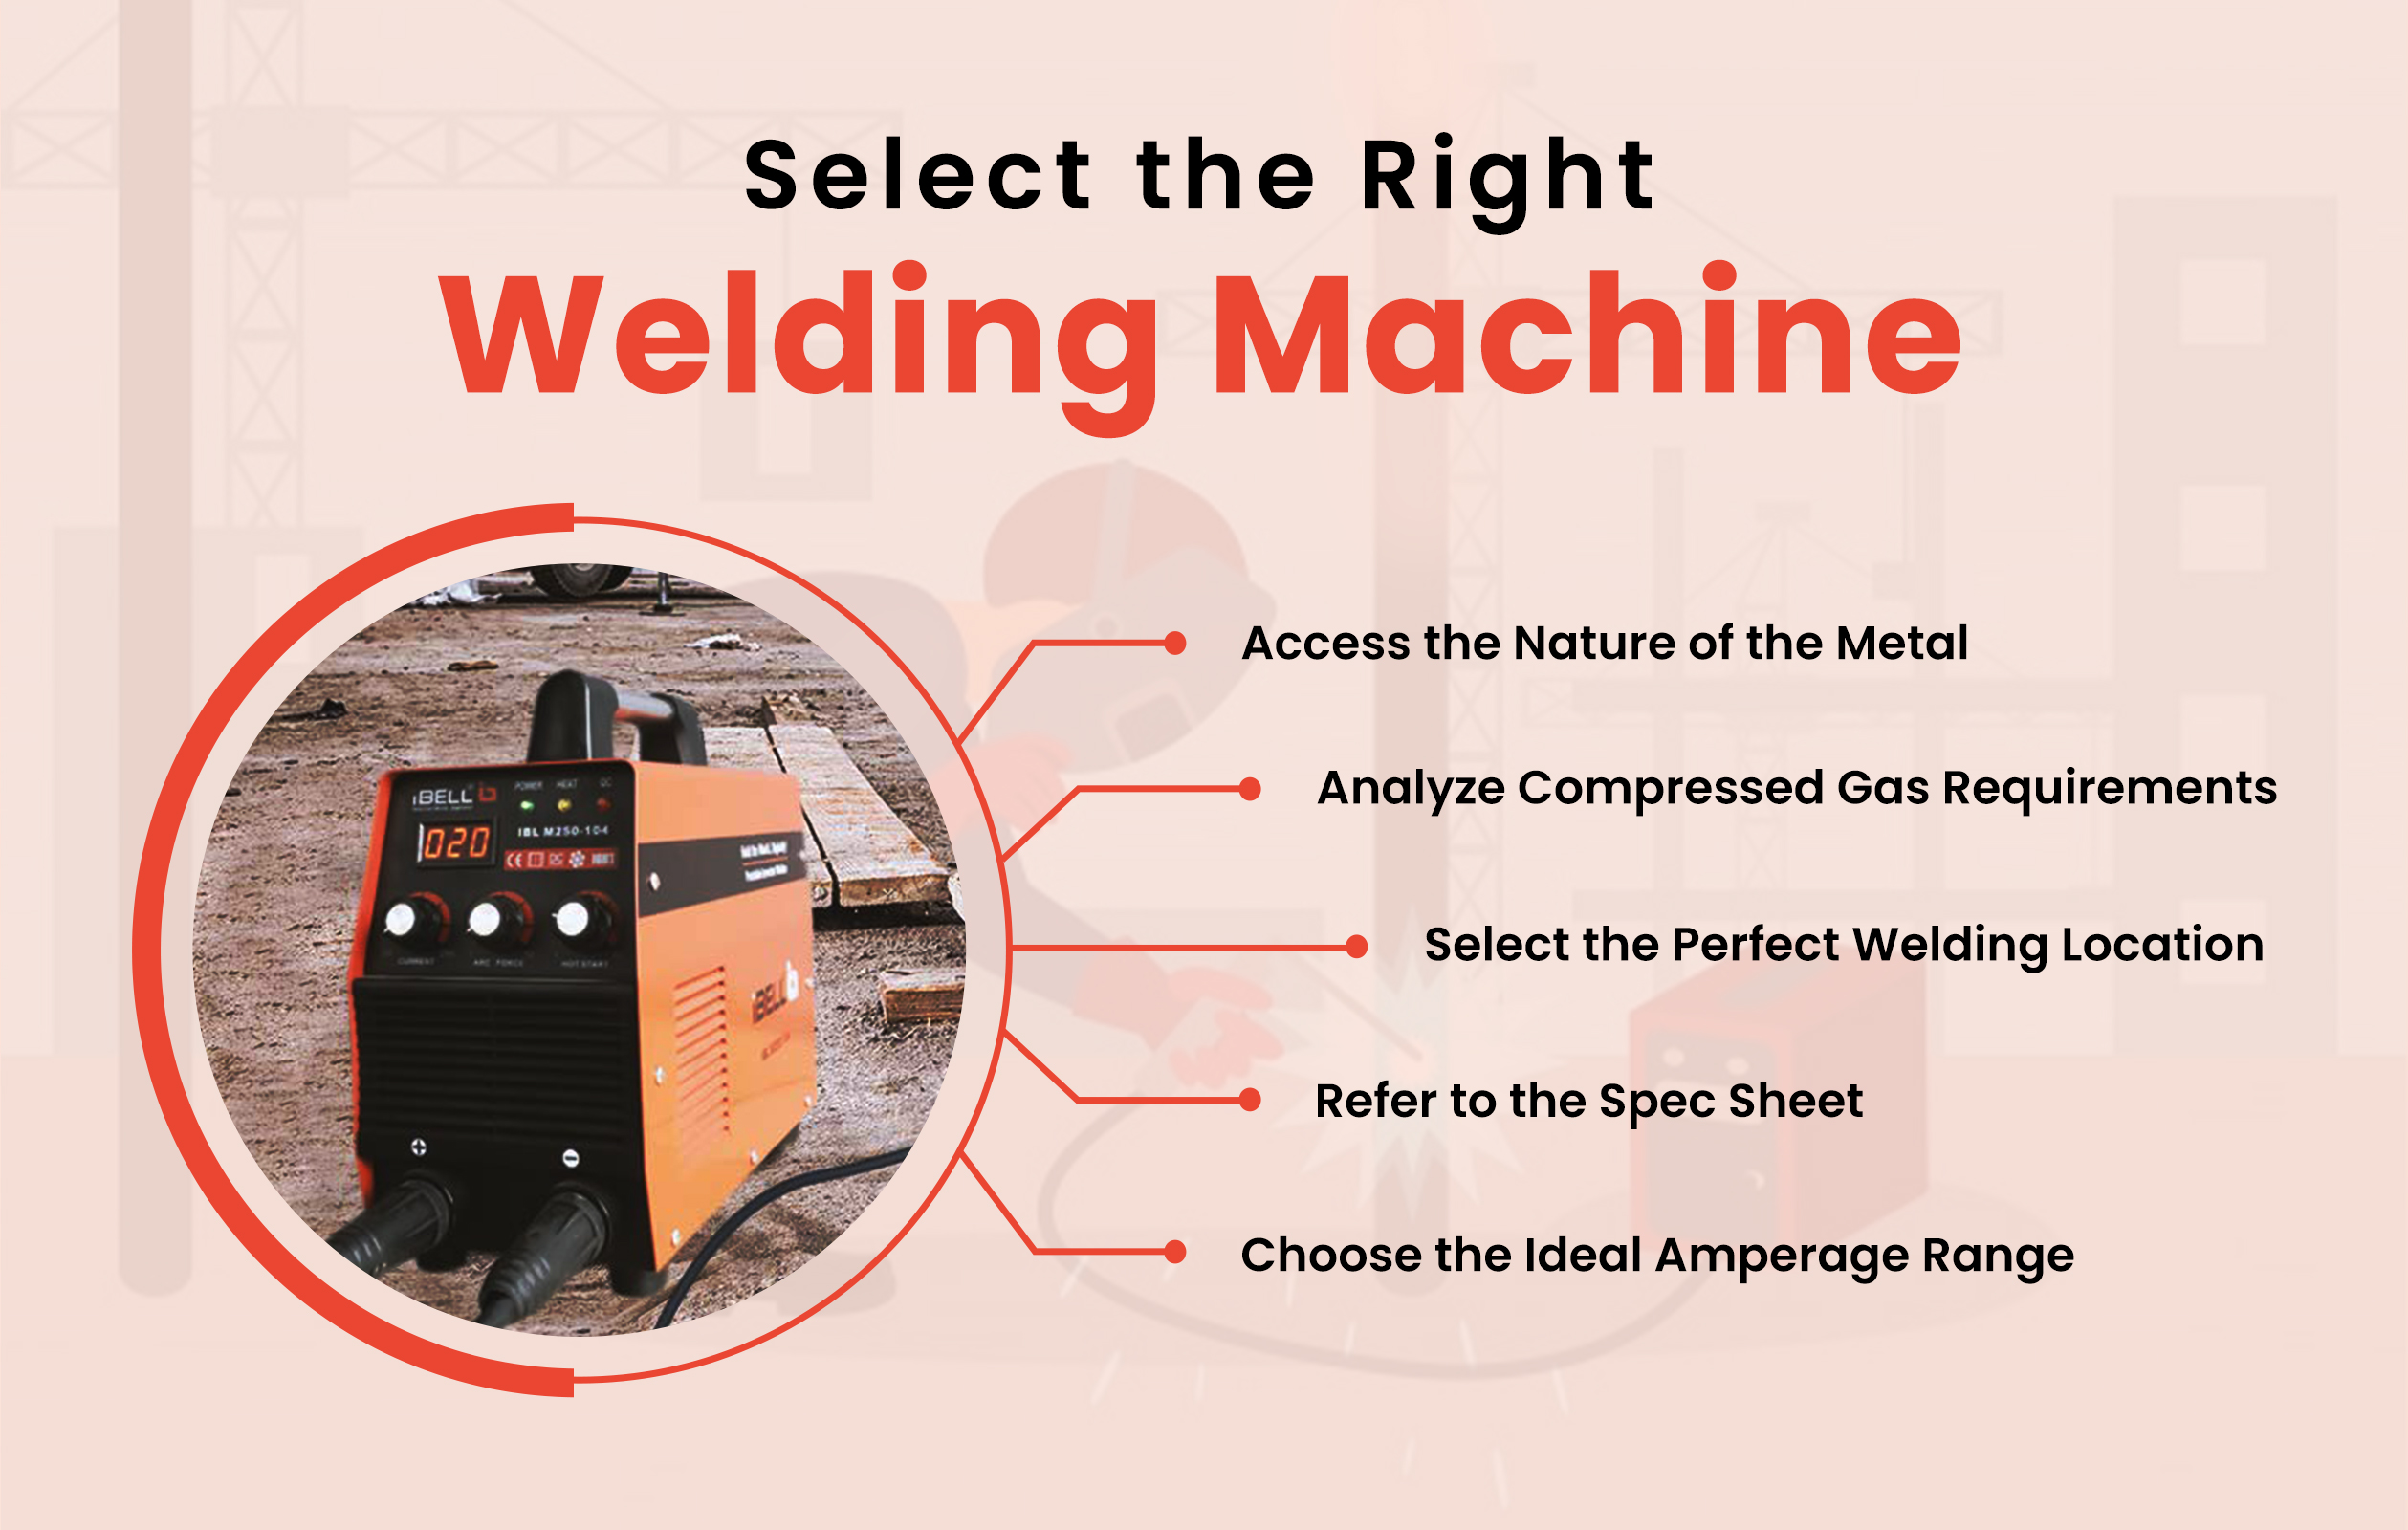 Select the Right Welding Machine